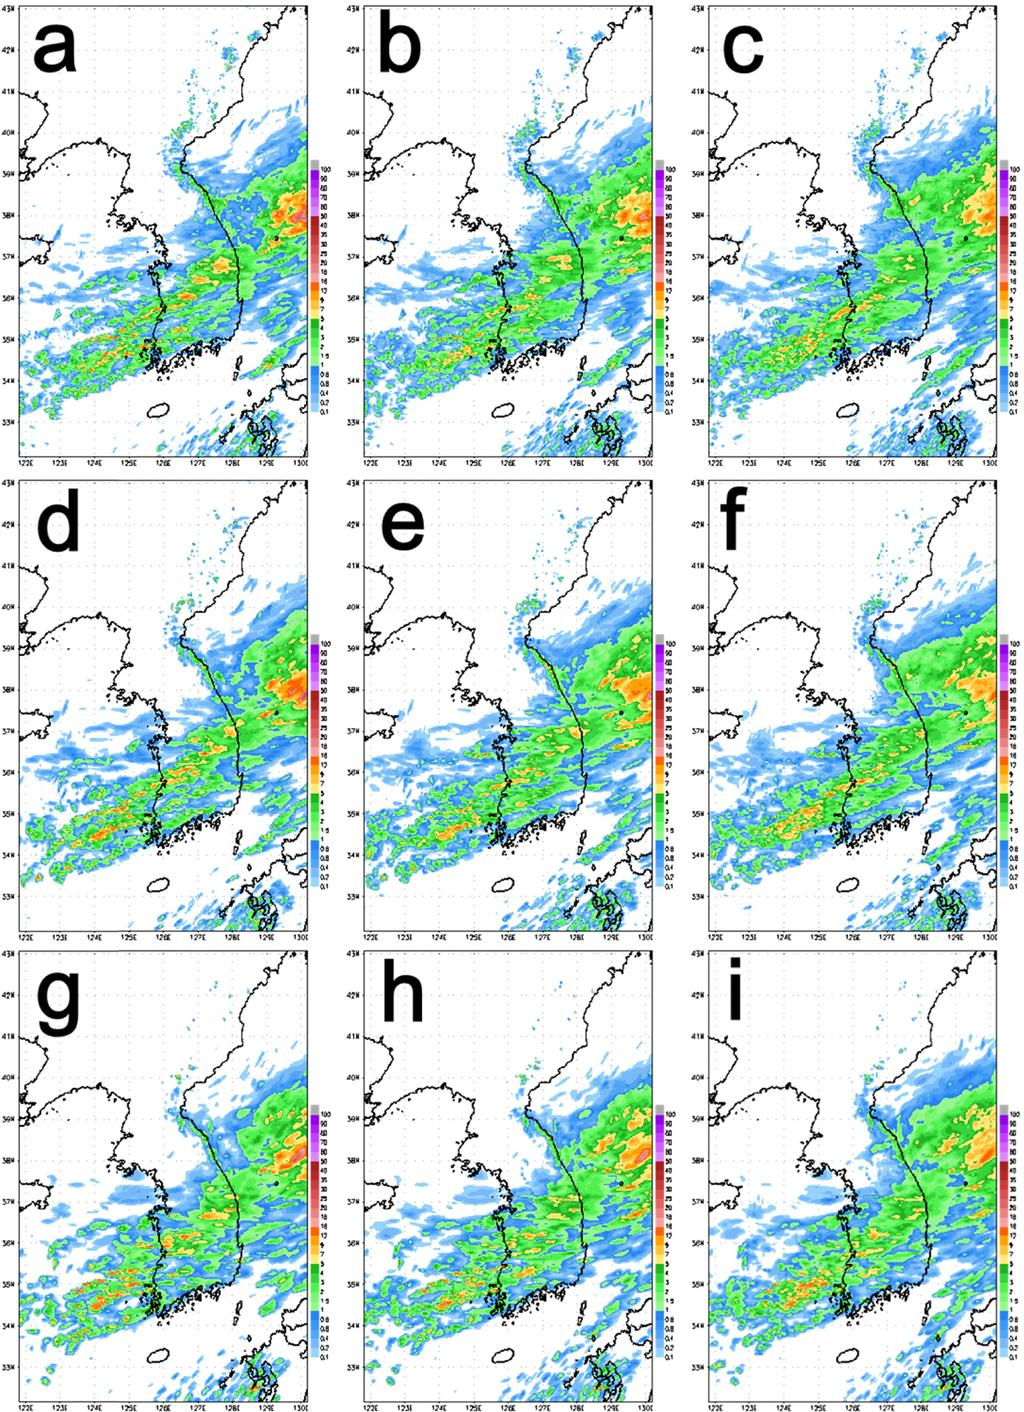 78 기상청 고해상도 국지 앙상블 예측 시스템 구축 및 성능 검증 Fig. 1. Ensemble mean of 1 hr accumulated precipitation forecasts for each member and resolution at 0000 UTC 13 Aug. 01 (top row: 1.